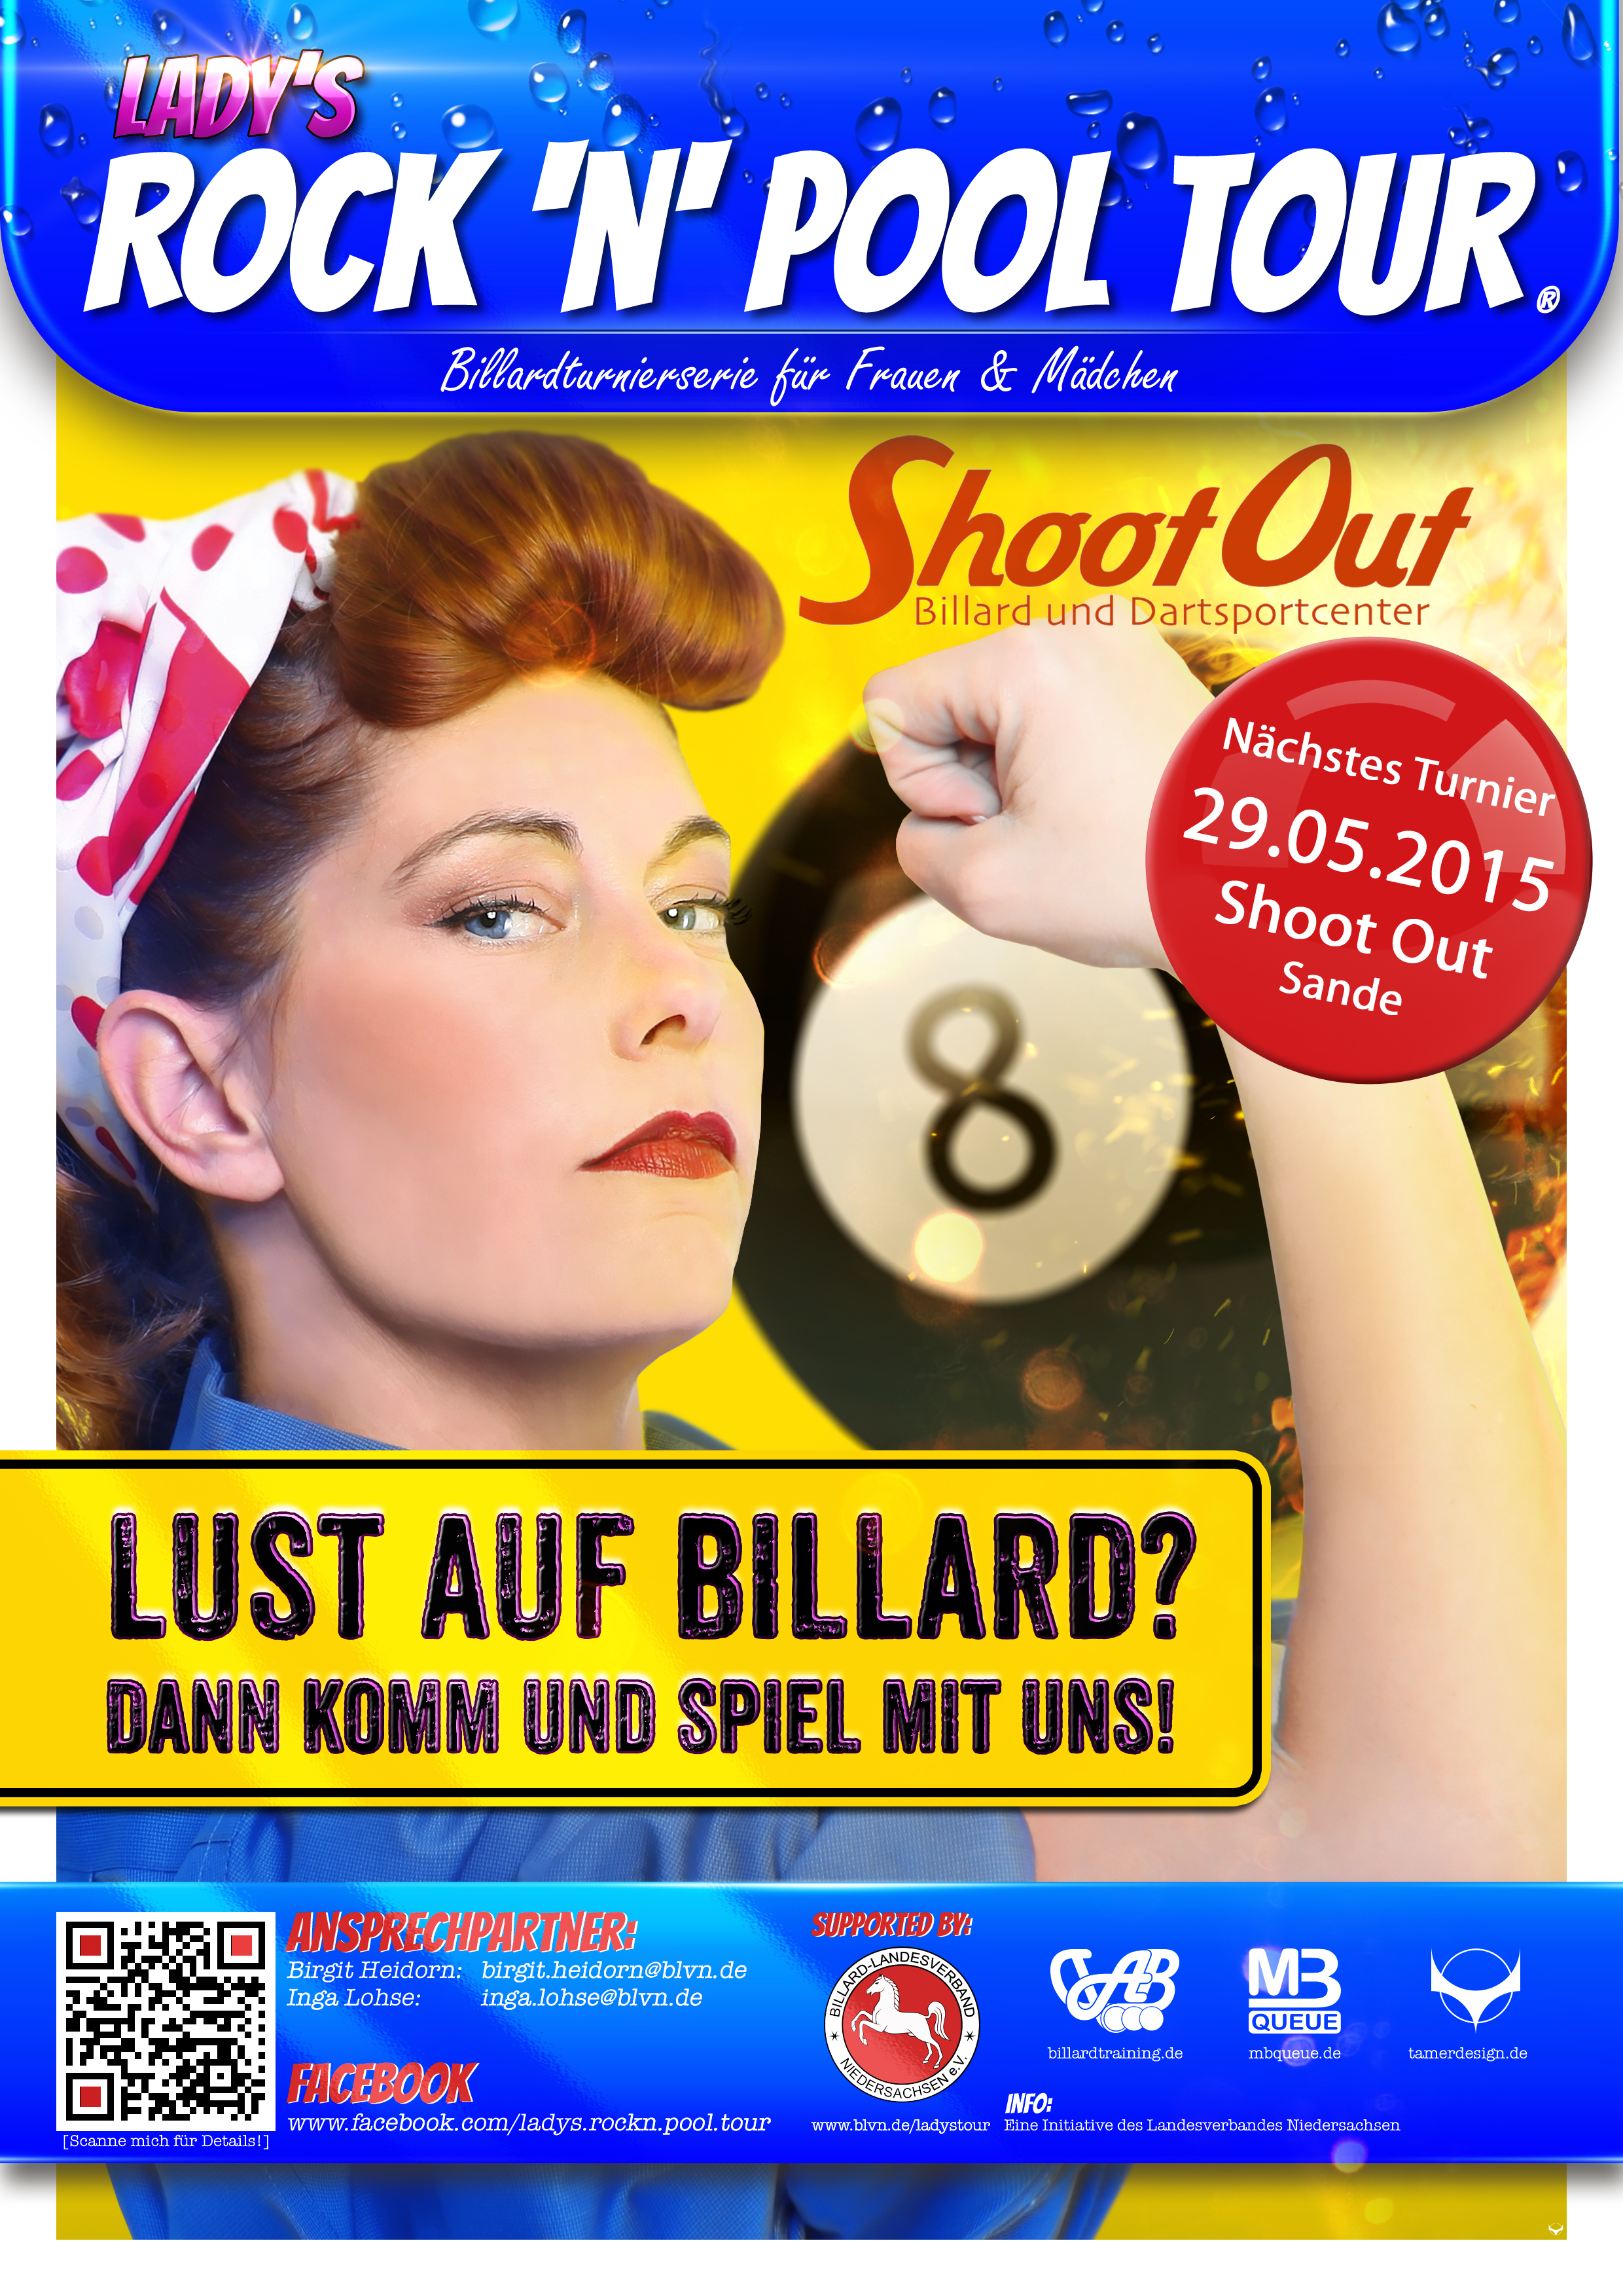 Shoot Out Billard und Dartsportcenter